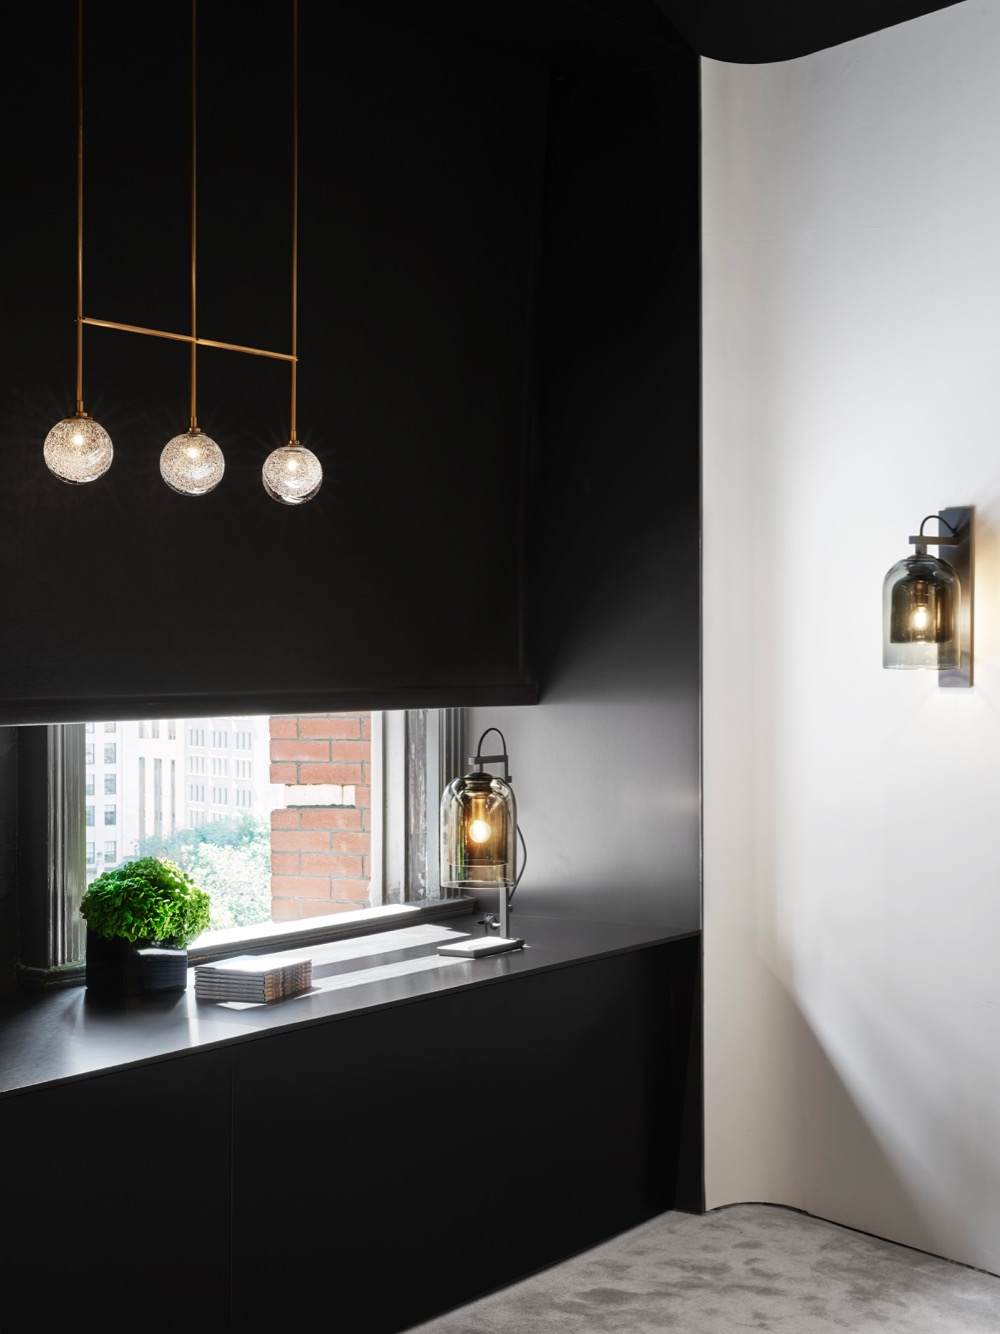 The Articolo New York showroom showing the Fizi Triple ball brass rod pendant and the Lumi table lamp and wall sconce. Photograph: Brooke Holm.